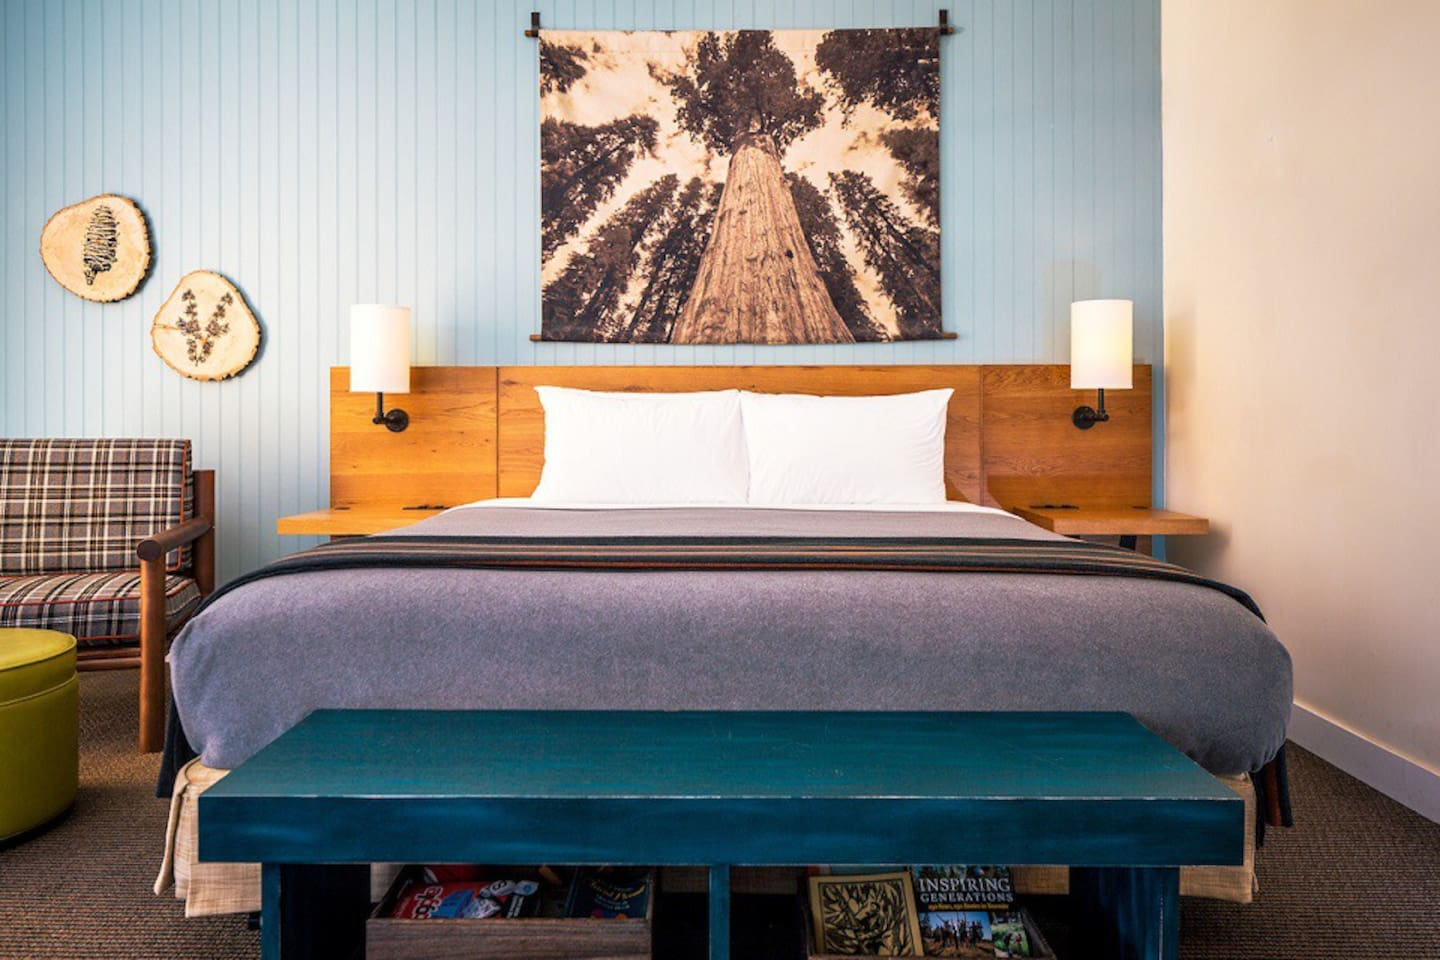 Our Lodge Rooms are designed to comfortably fit parties up to 4 people.  All Lodge Rooms feature a stylish sitting area, private deck, king bed and queen sofa bed, and private bathroom with shower.